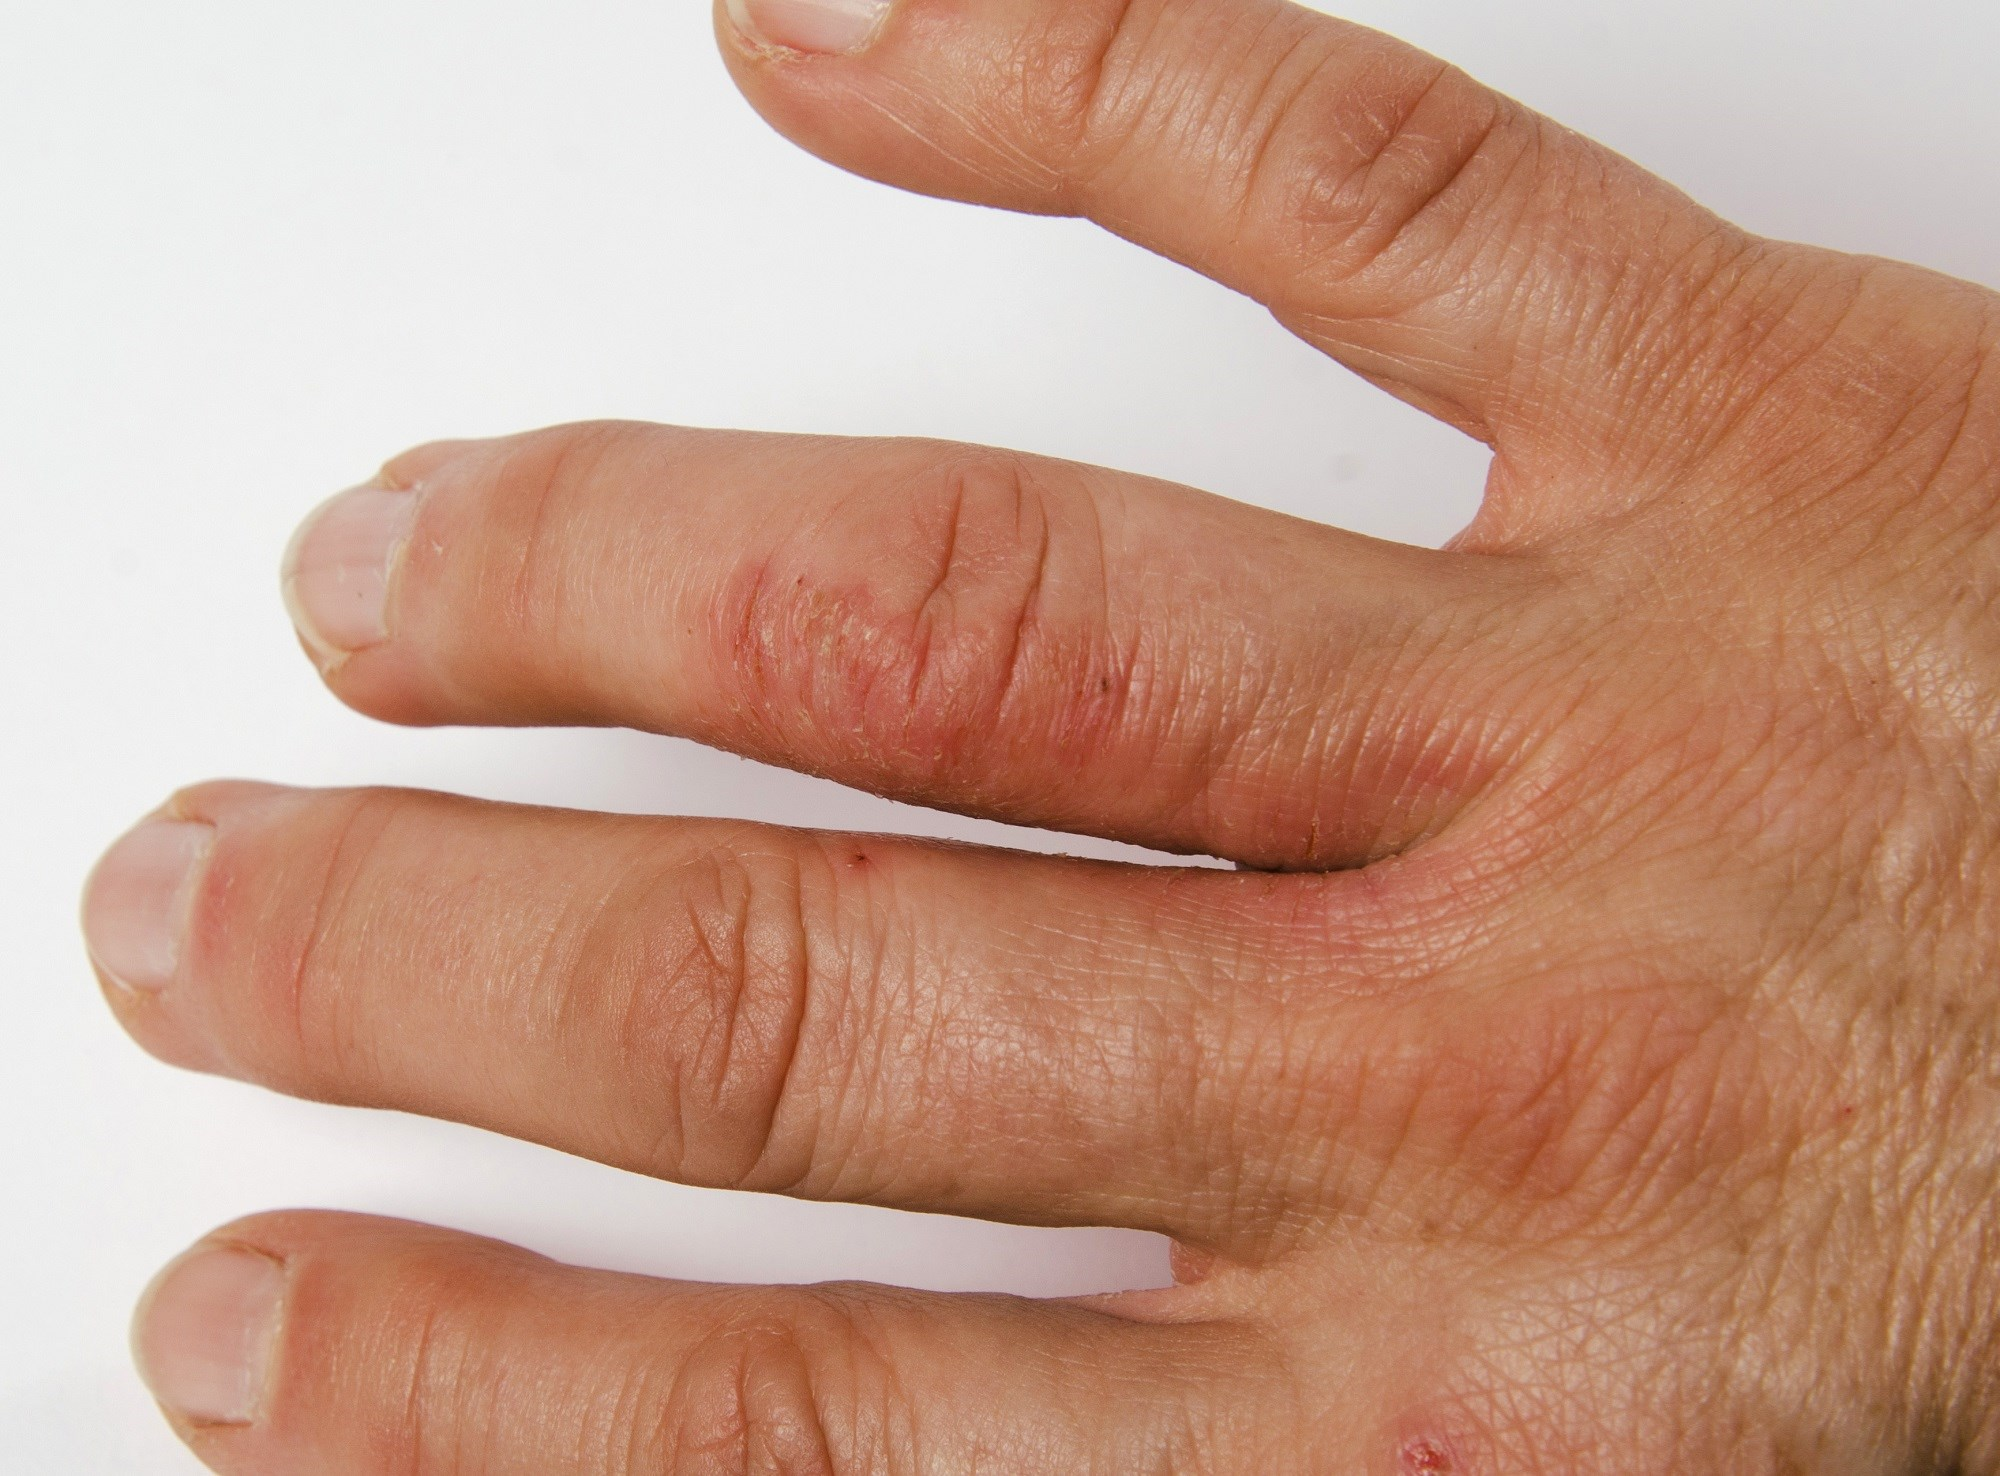 Filgotinib Effective for Treatment of Active Psoriatic Arthritis